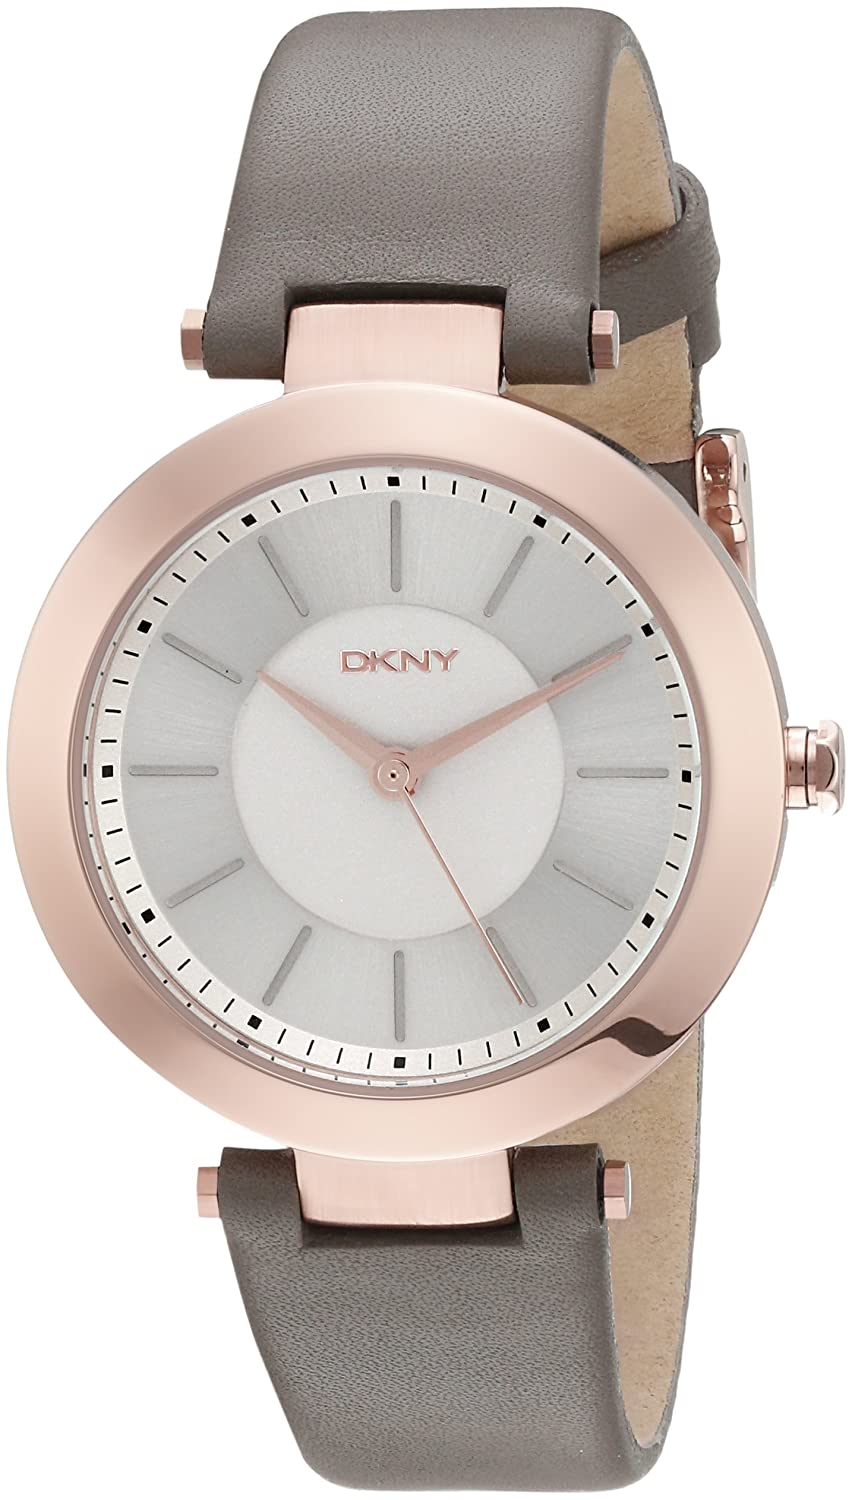 Amazon.com: DKNY Women's NY2296 Stanhope Stainless Steel Watch With Grey  Band: DKNY: Watches